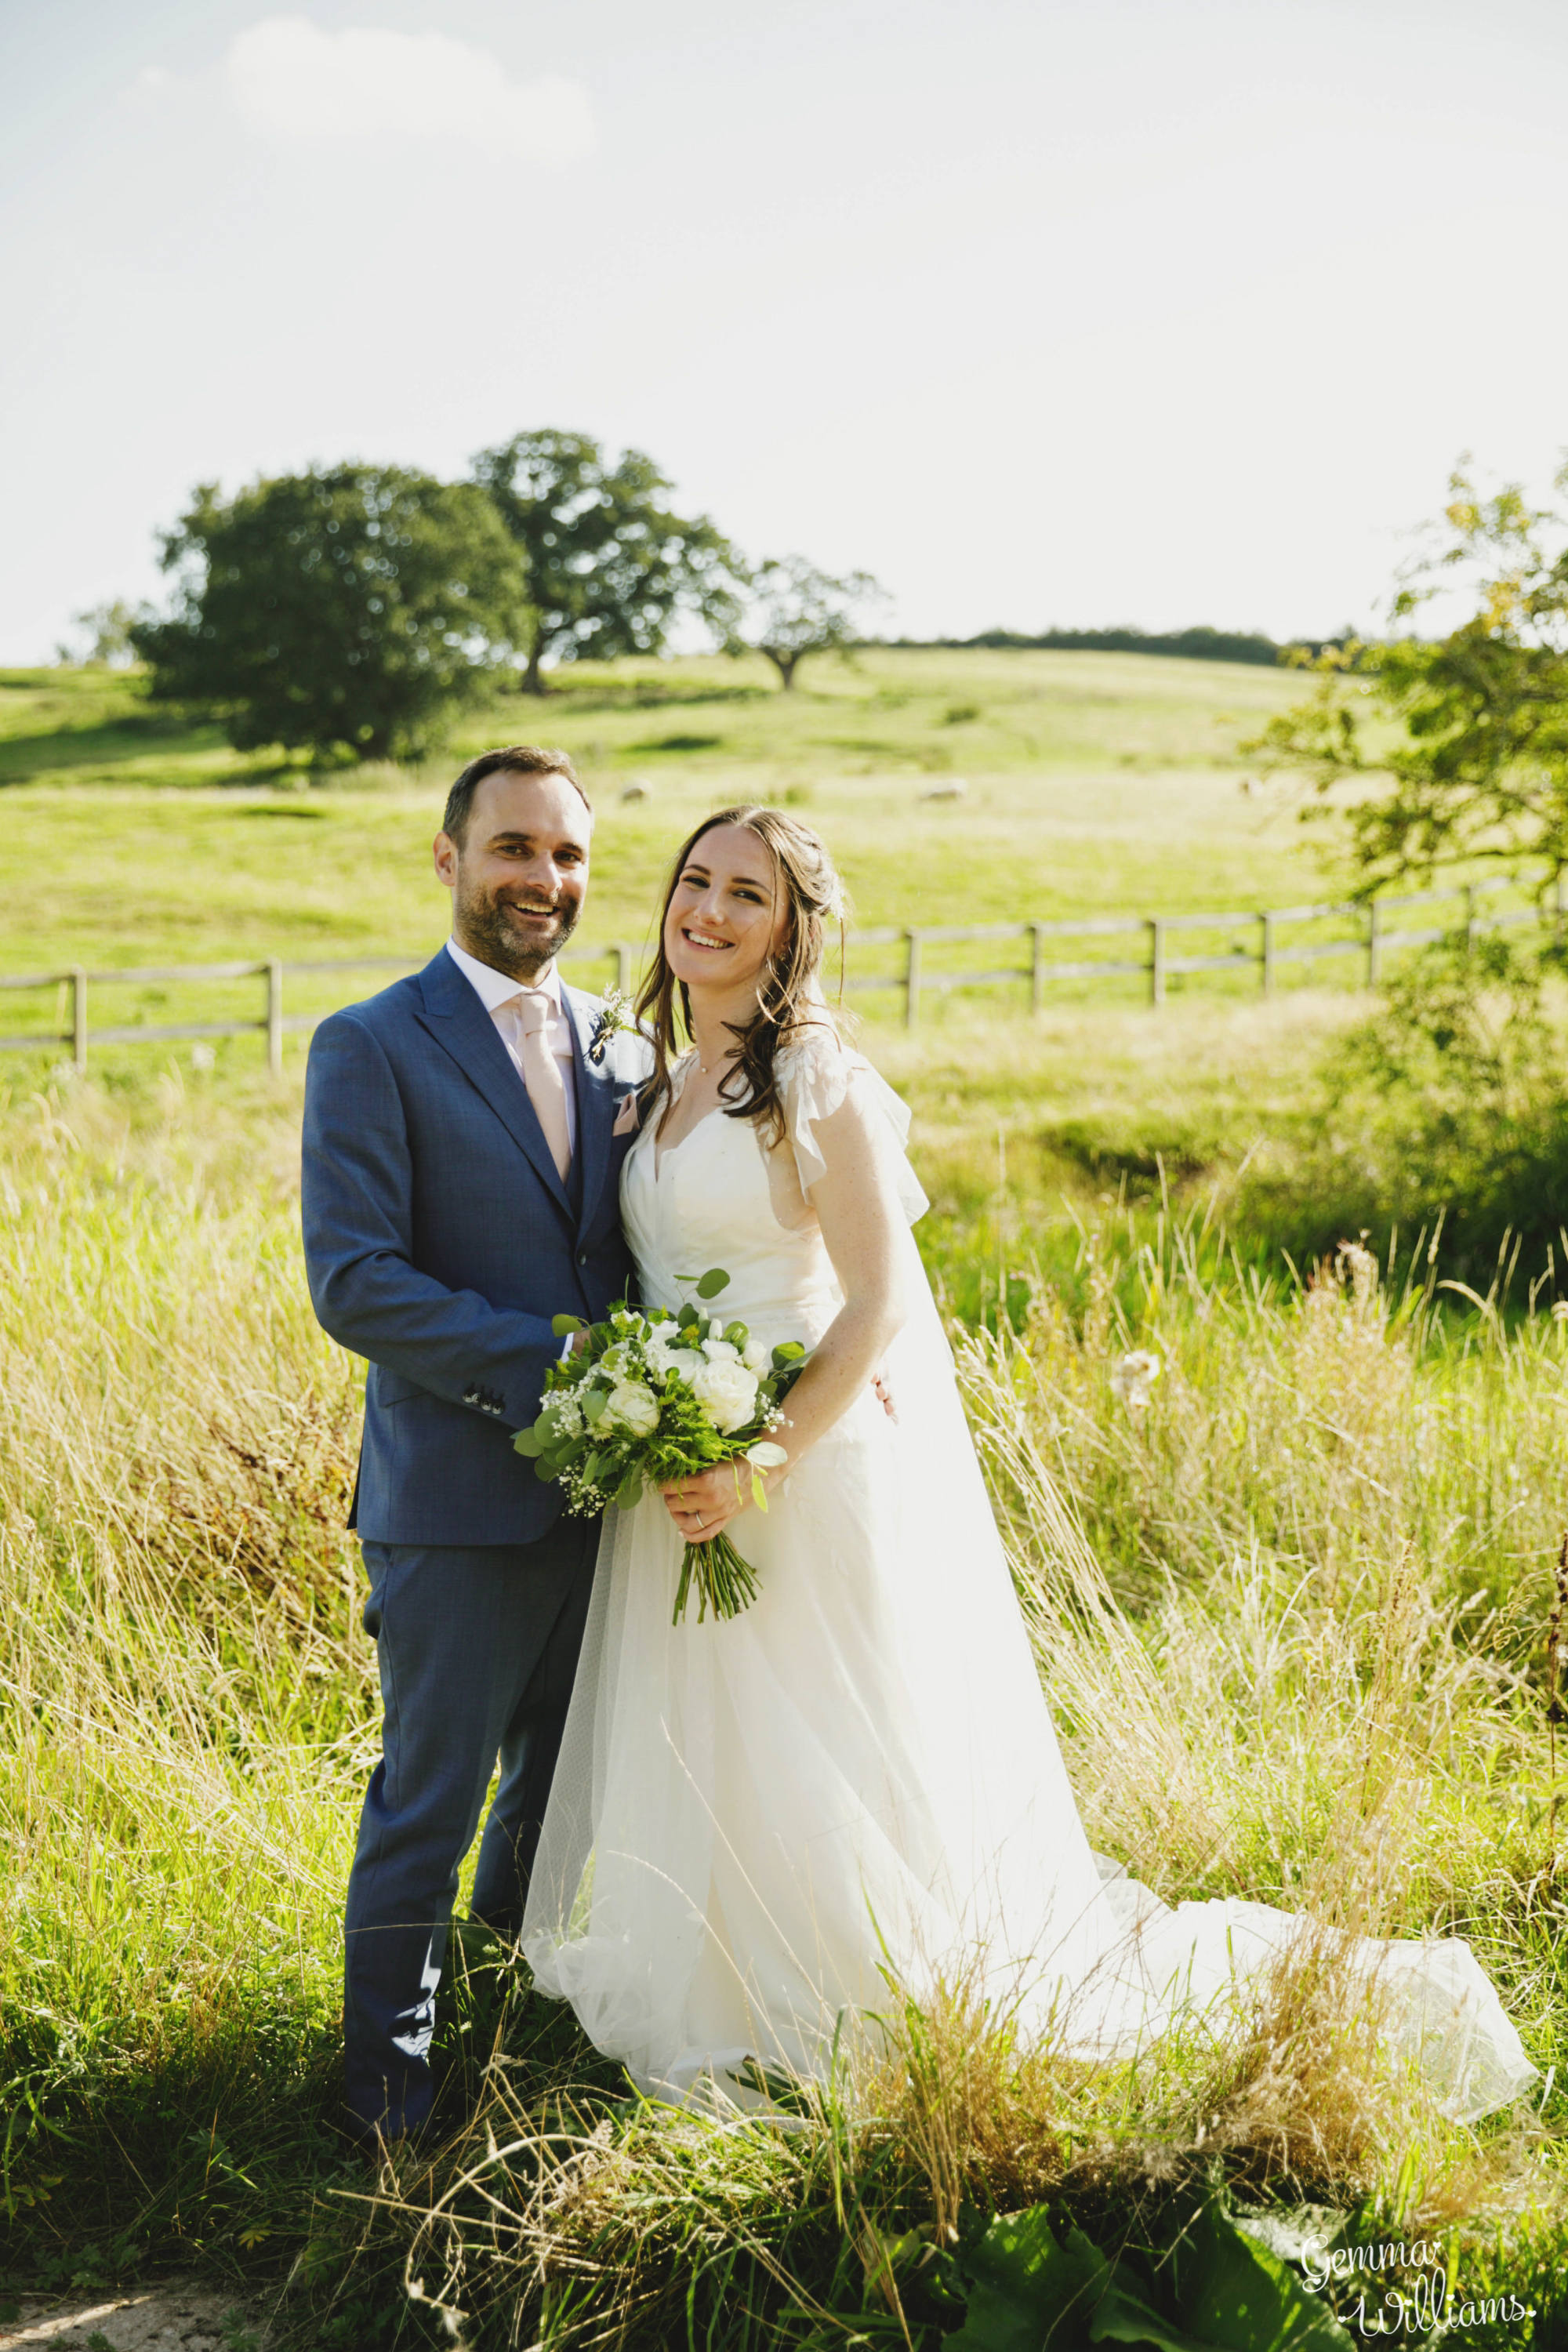 GemmaWilliamsPhotography_Weddings2018_0659.jpg